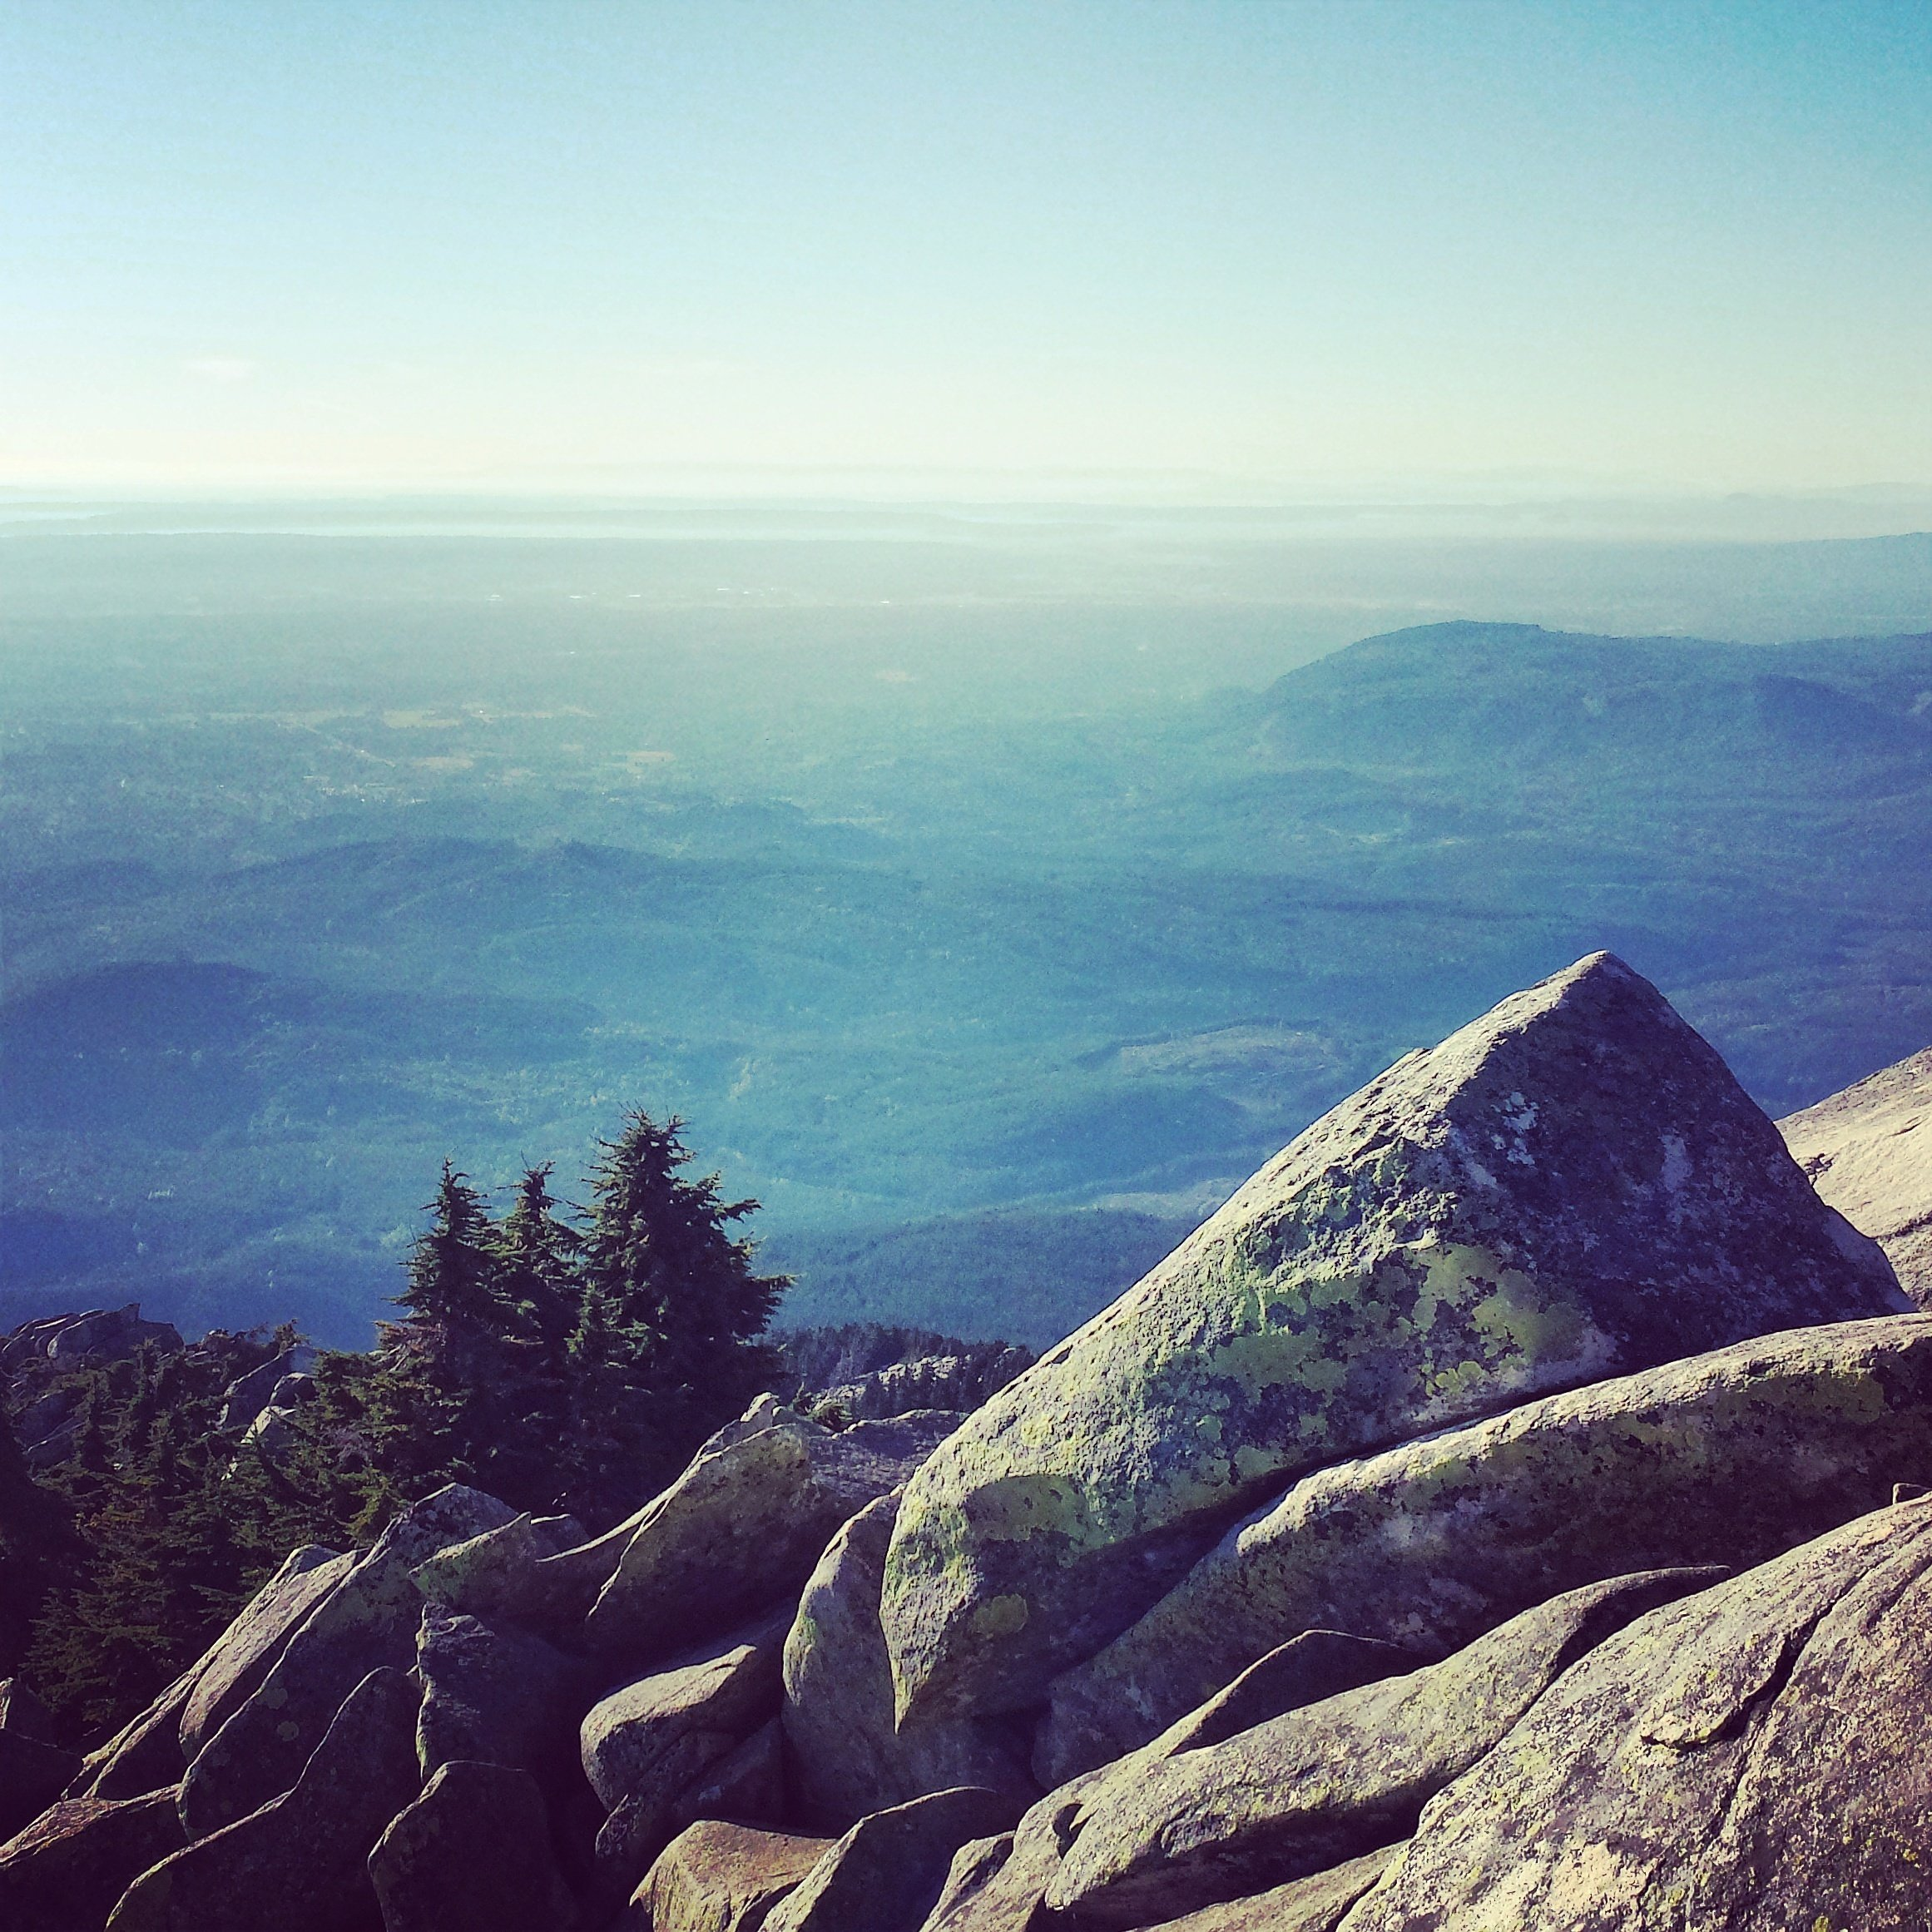 Photo Journal Mount Pilchuck, WA by Sabrina Brett 6